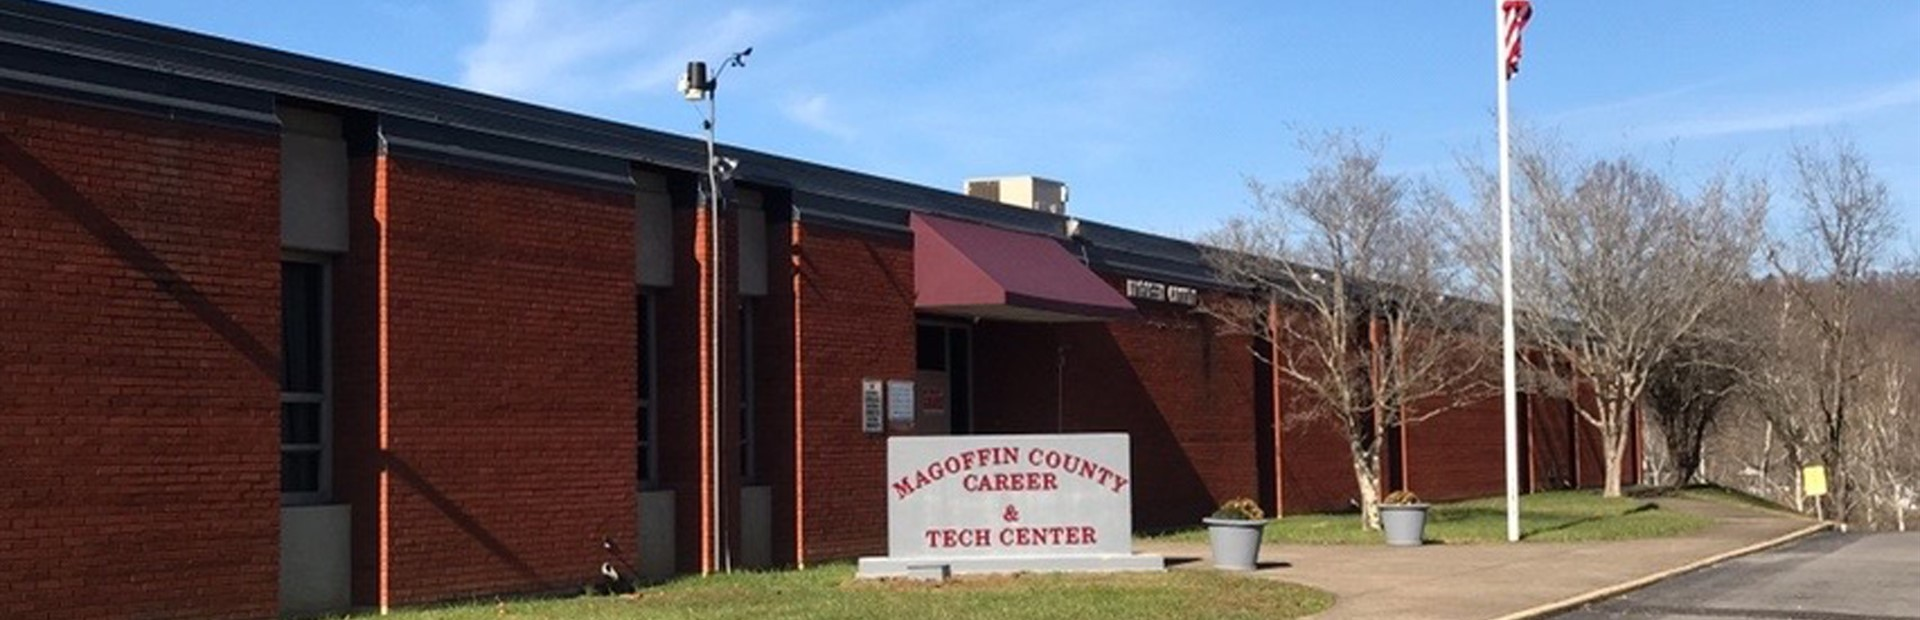 Magoffin County Career & Tech Center